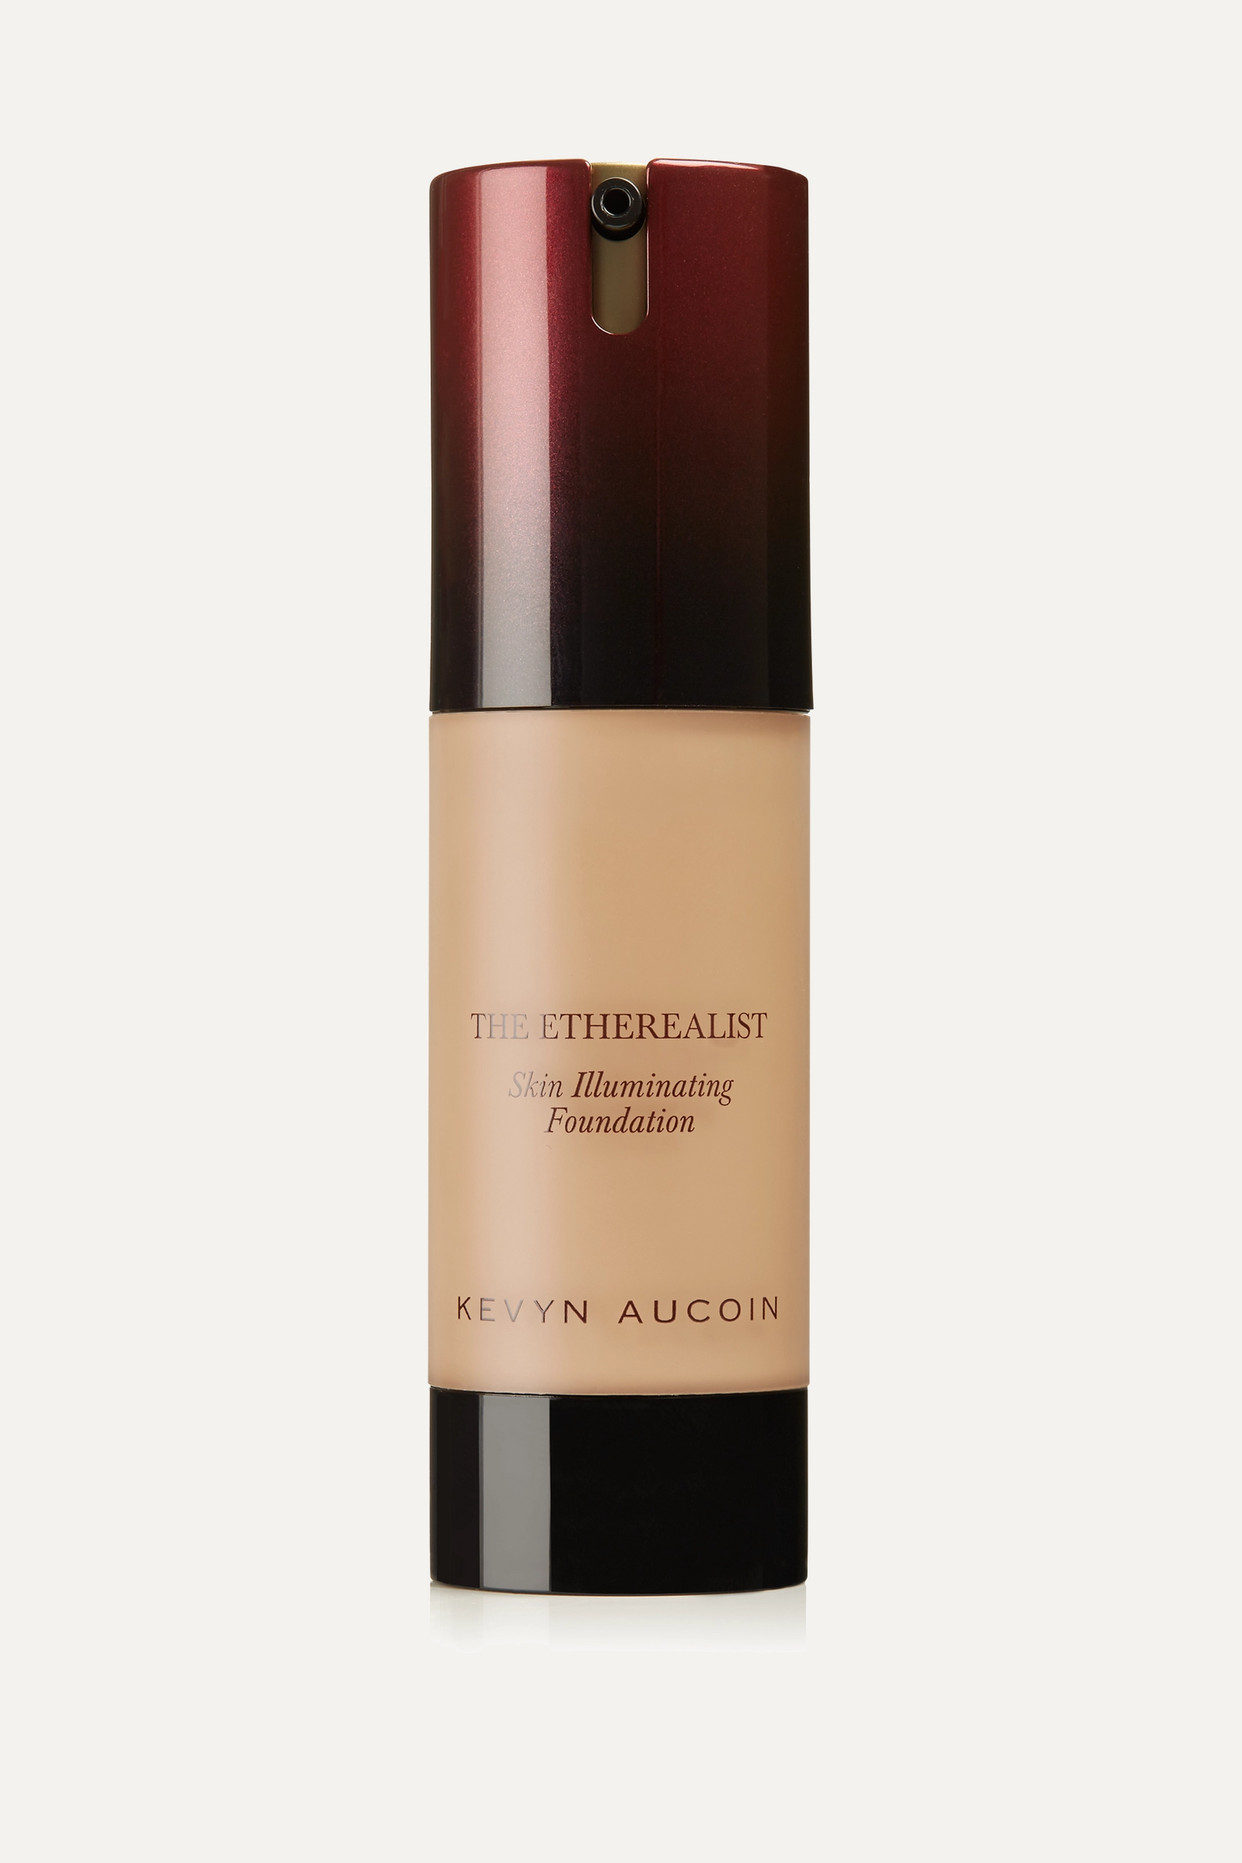 KEVYN AUCOIN - The Etherealist Skin Illuminating Foundation - Medium Ef07 - Neutrals - one size